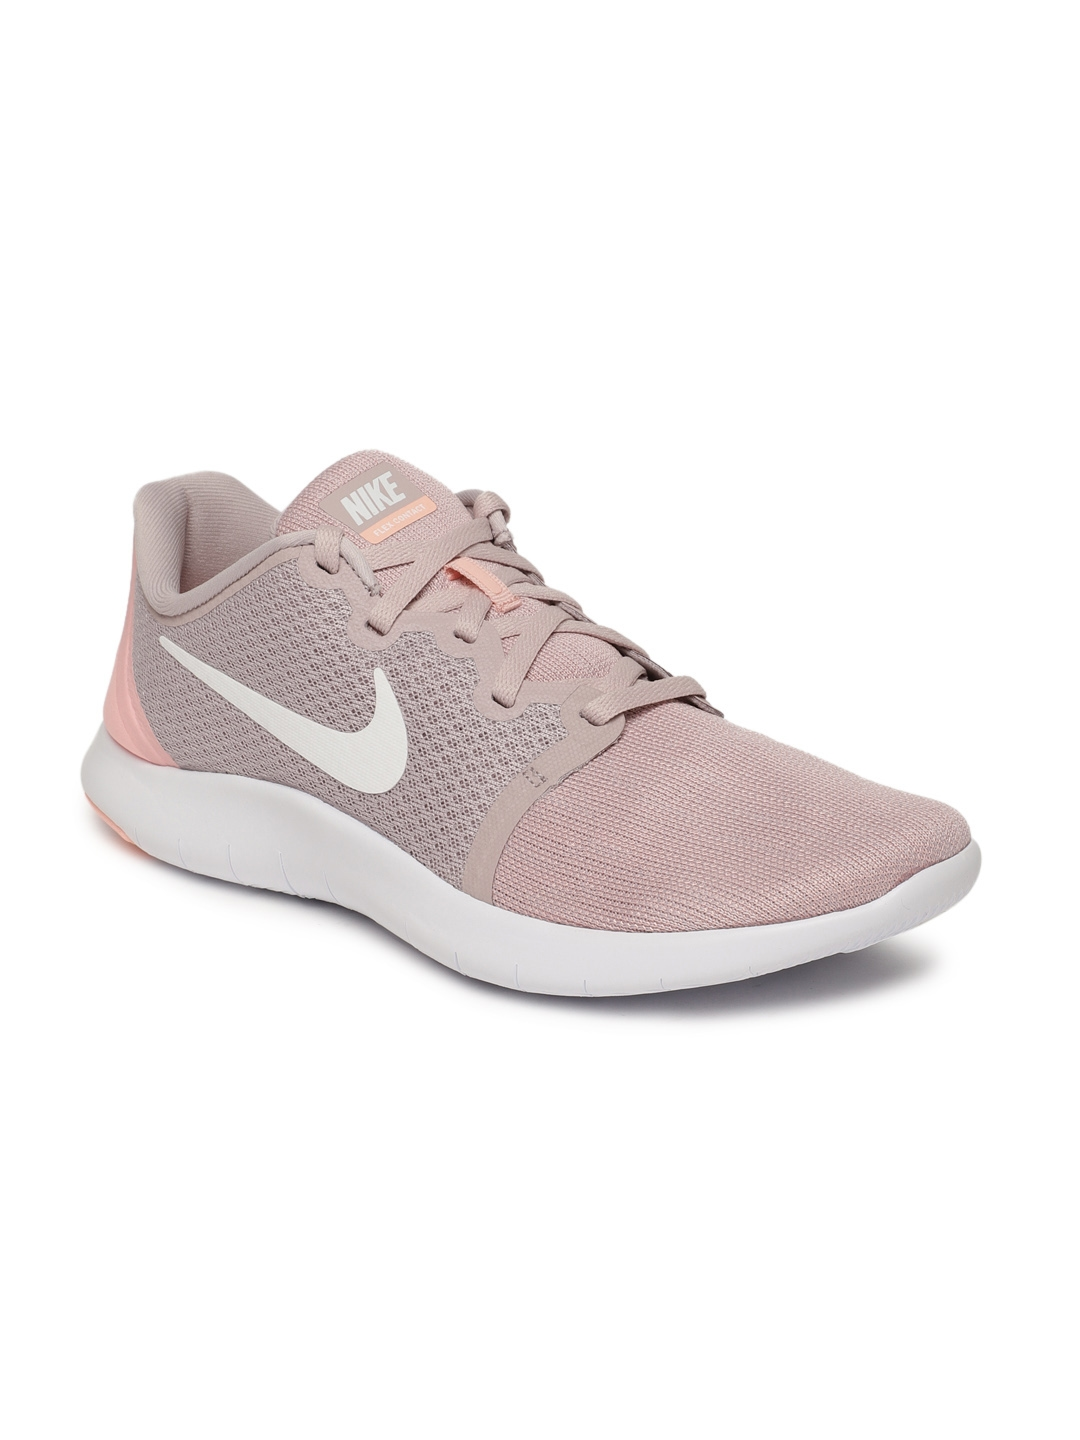 e6bd68c44b409 Buy Nike Women Pink Flex Contact 2 Running Shoes - Sports Shoes for ...